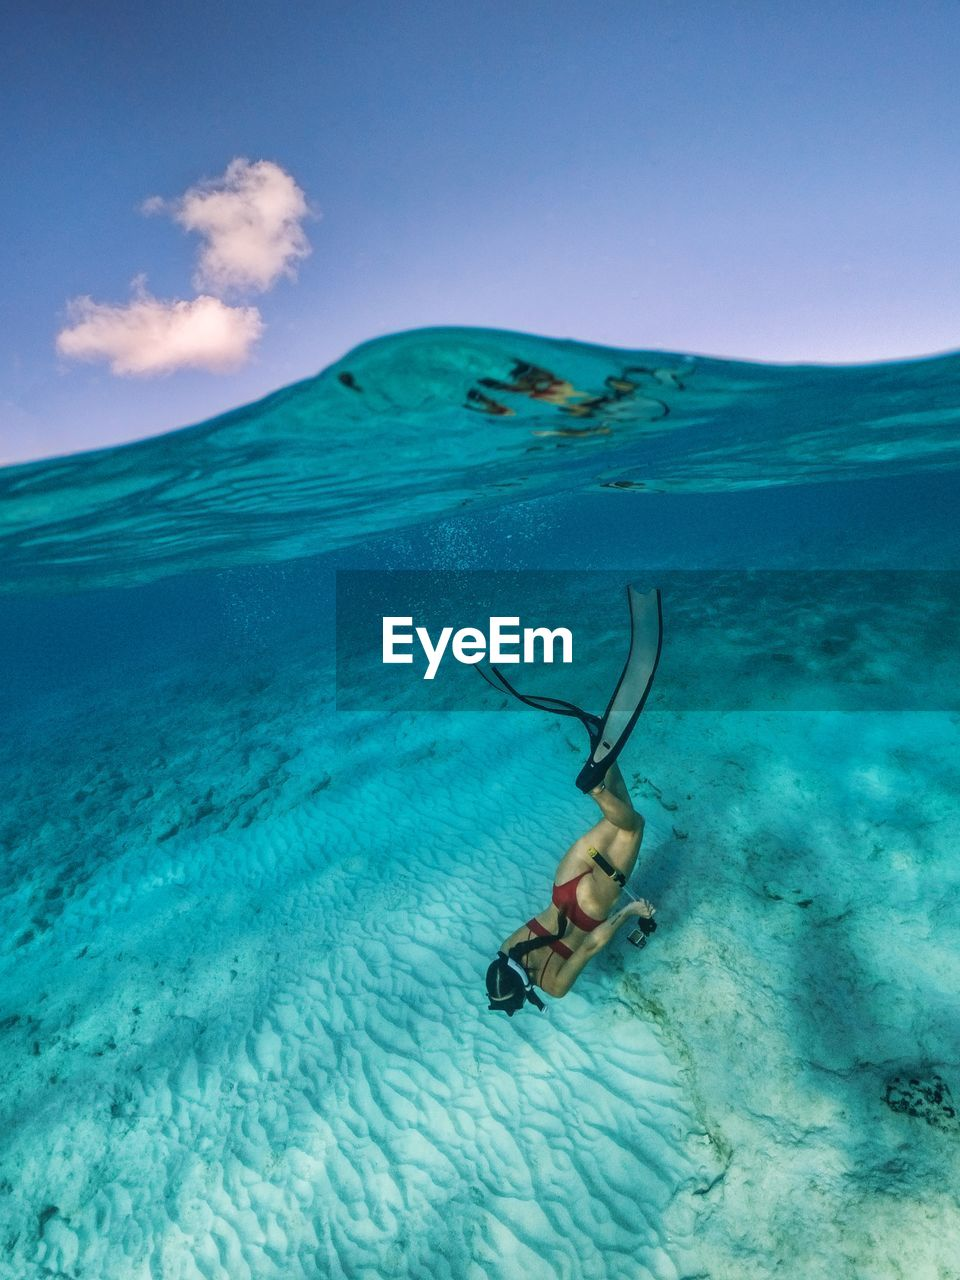 sea, water, nature, sky, underwater, one person, blue, swimming, full length, undersea, beauty in nature, day, leisure activity, adventure, real people, exploration, turquoise colored, trip, snorkeling